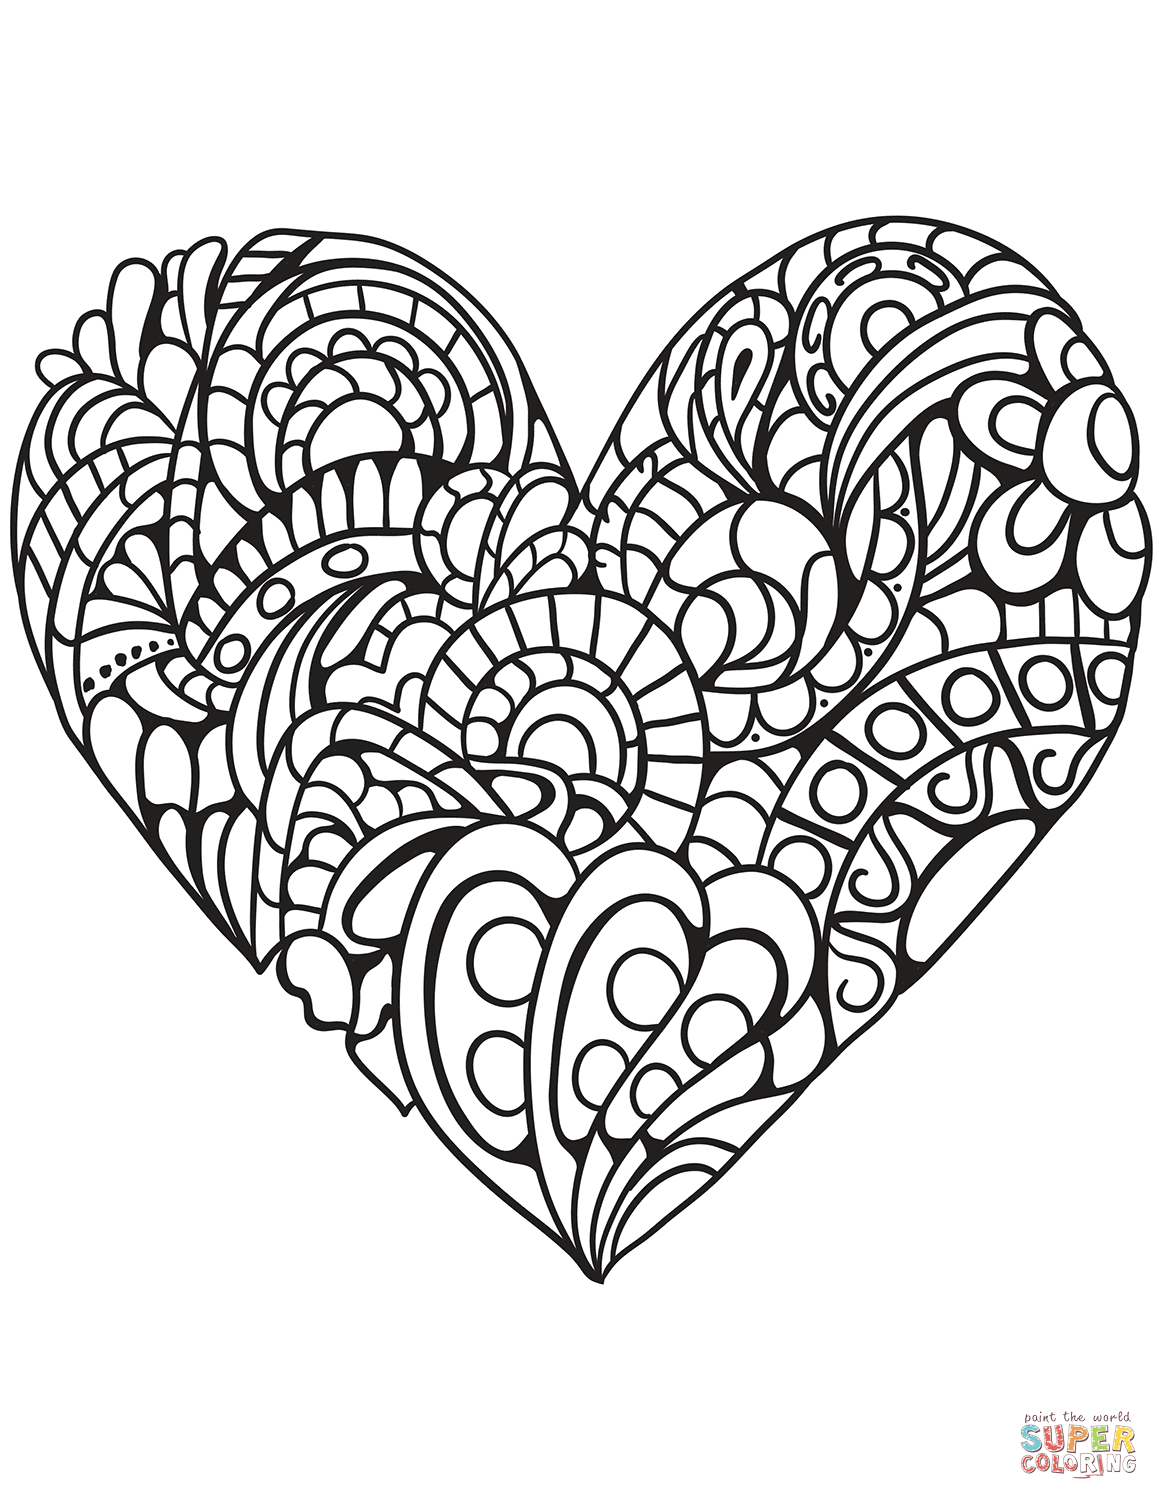 Zentangle Heart Coloring Page